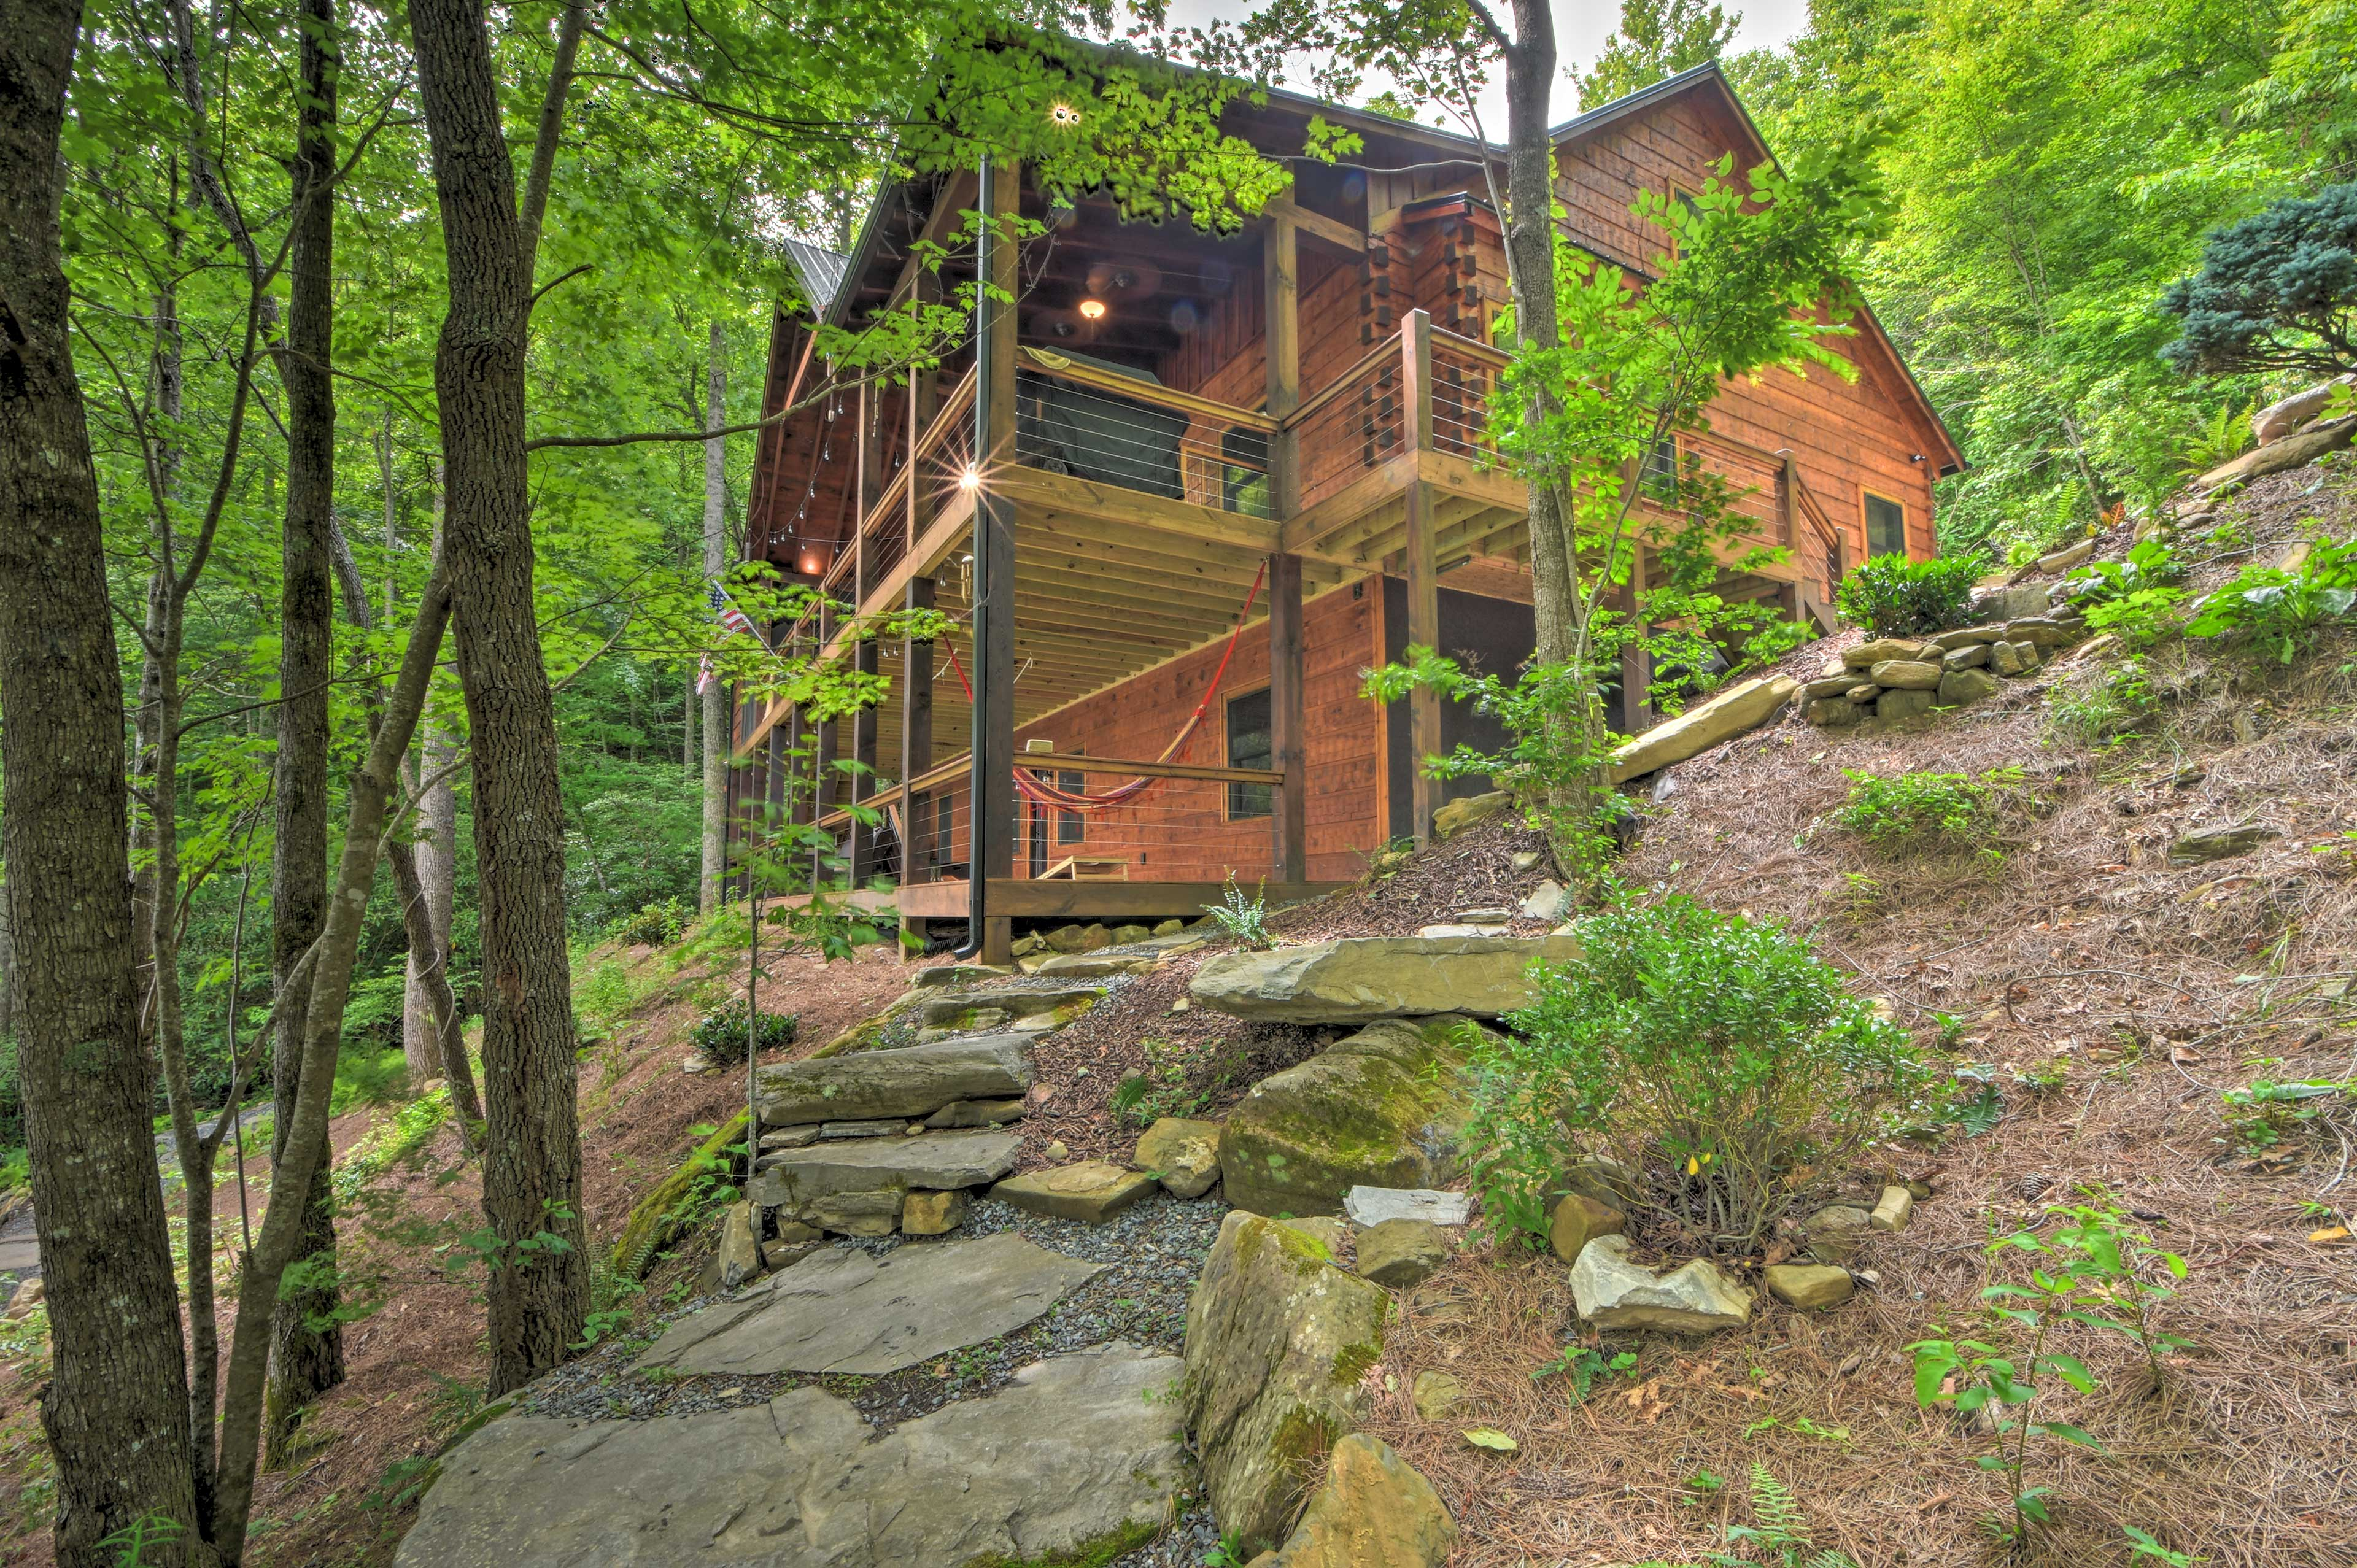 Make this your home base in the Great Smoky Mountains!